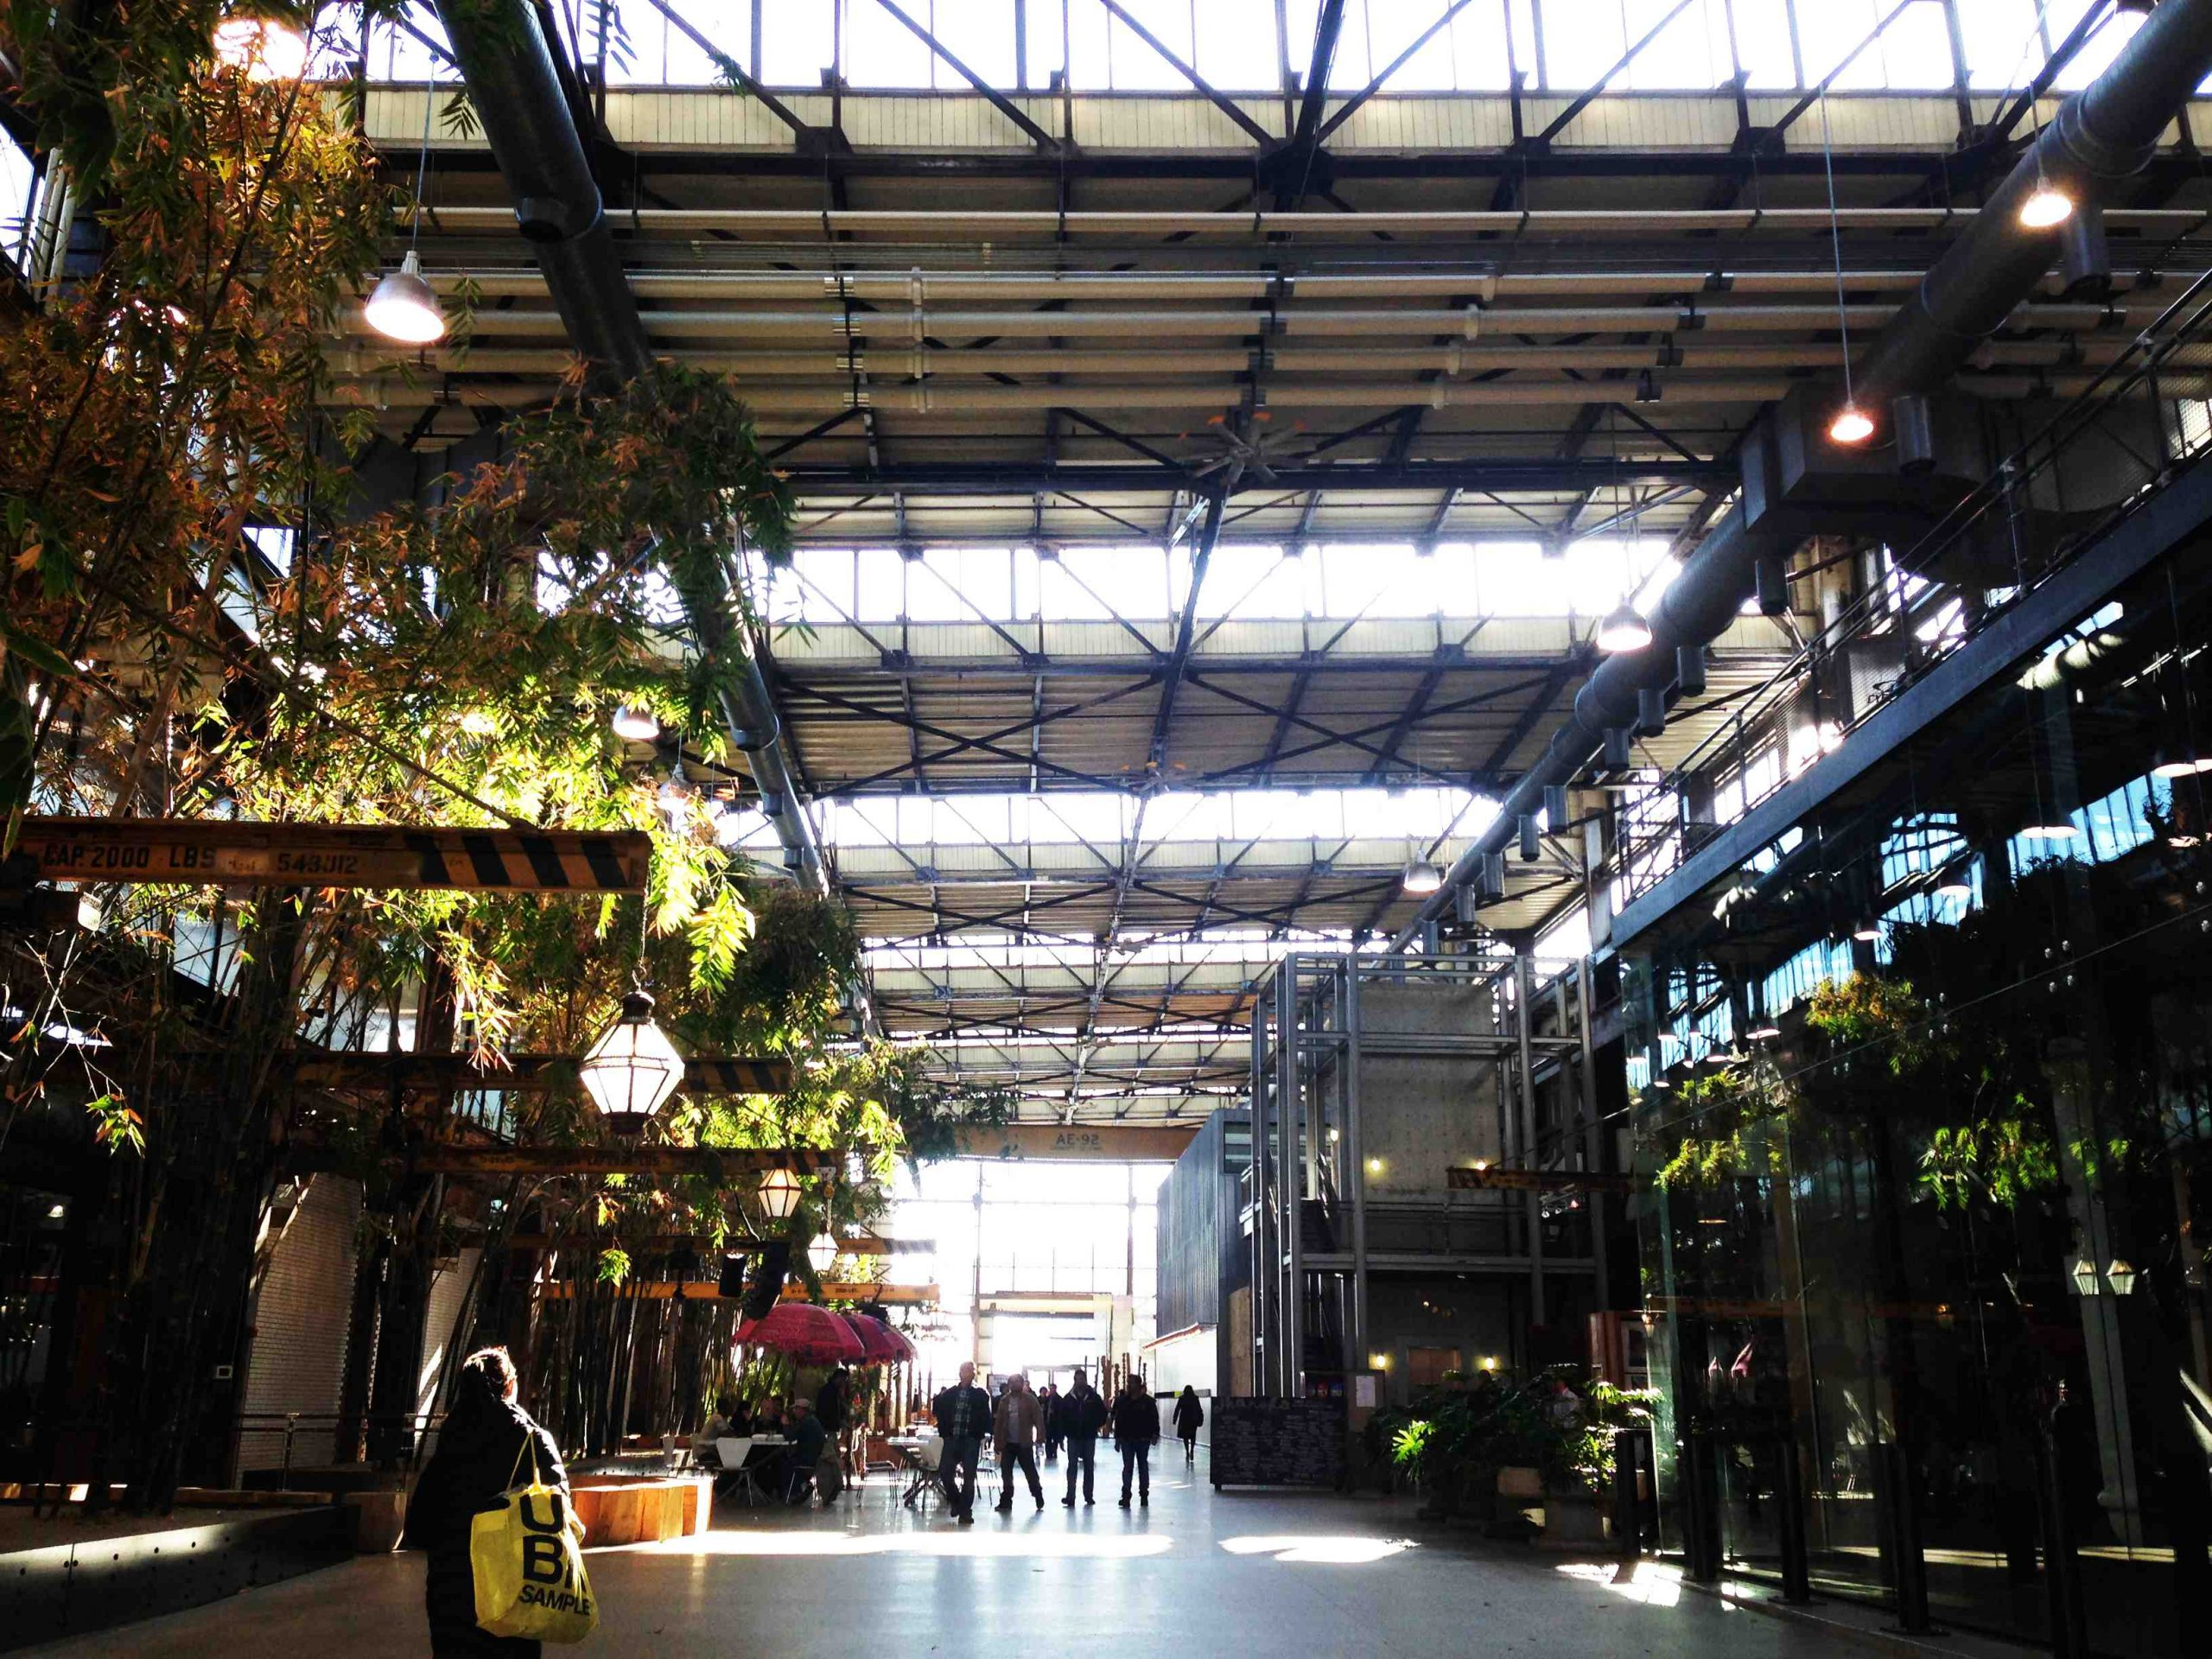 Shop 543 is a cafeteria-style restaurant with a variety of delicious and healthy lunch options, located in Urban Outfitters' Building 543. Photo courtesy of Philadelphia Industrial Development Corporation (PIDC).